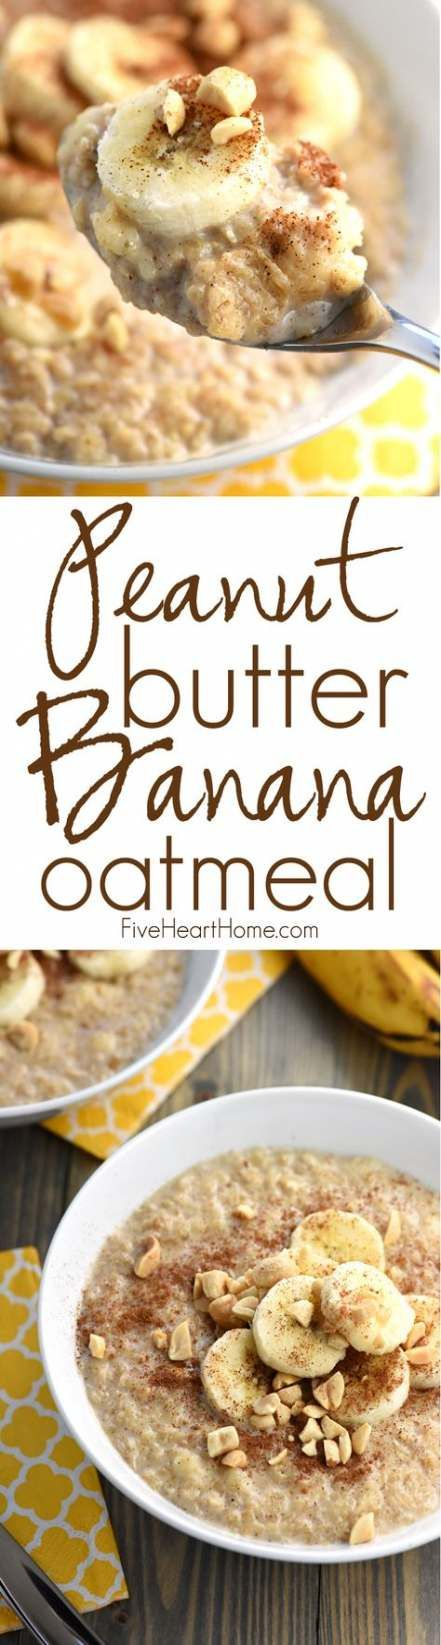 Super Breakfast Ideas Healthy Easy Fitness Peanut Butter Ideas #fitness #breakfast